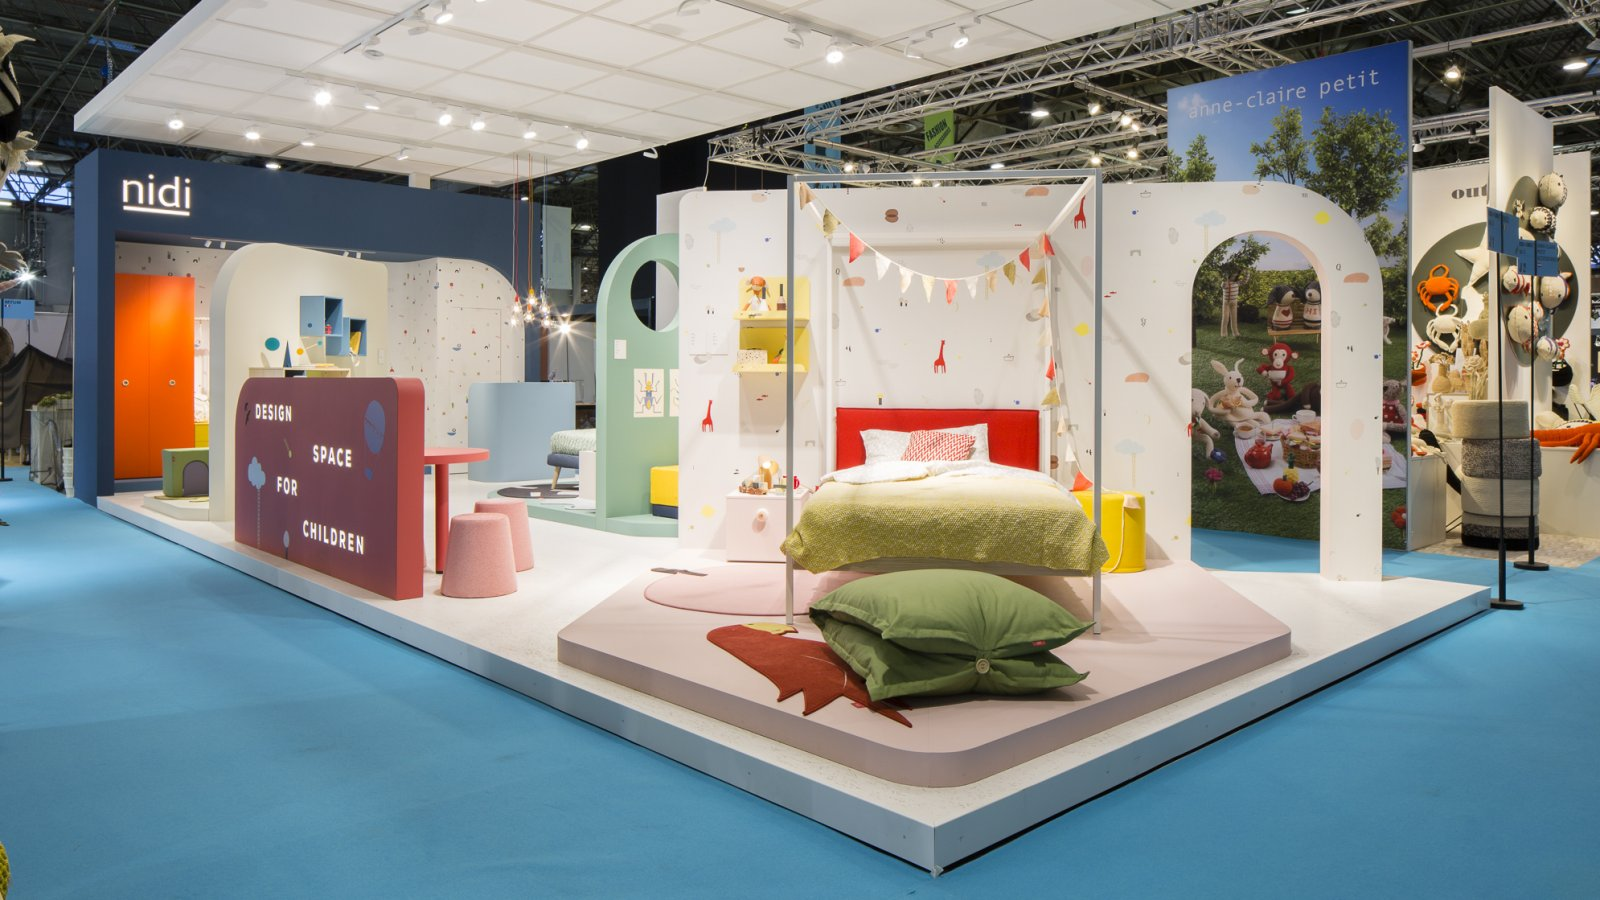 Thanks for participating in Maison&Objet 2019!